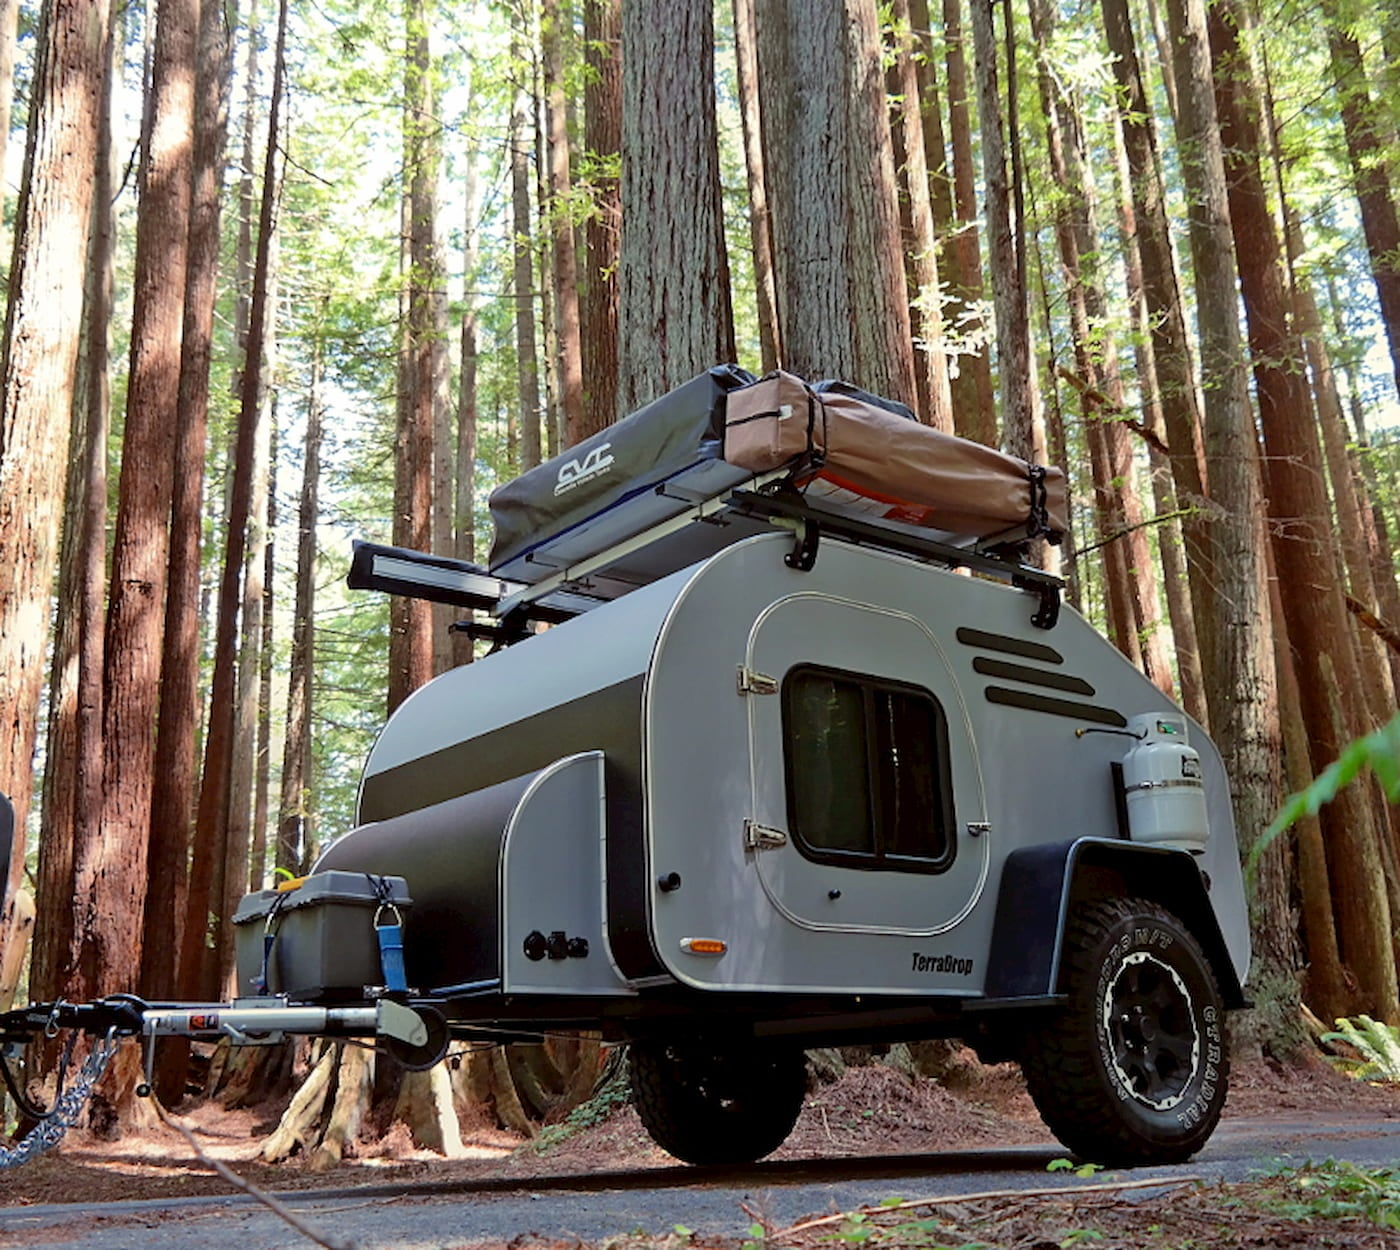 The Terradrop all terrain trailer equipped with a rooftop tent being towed through the forest